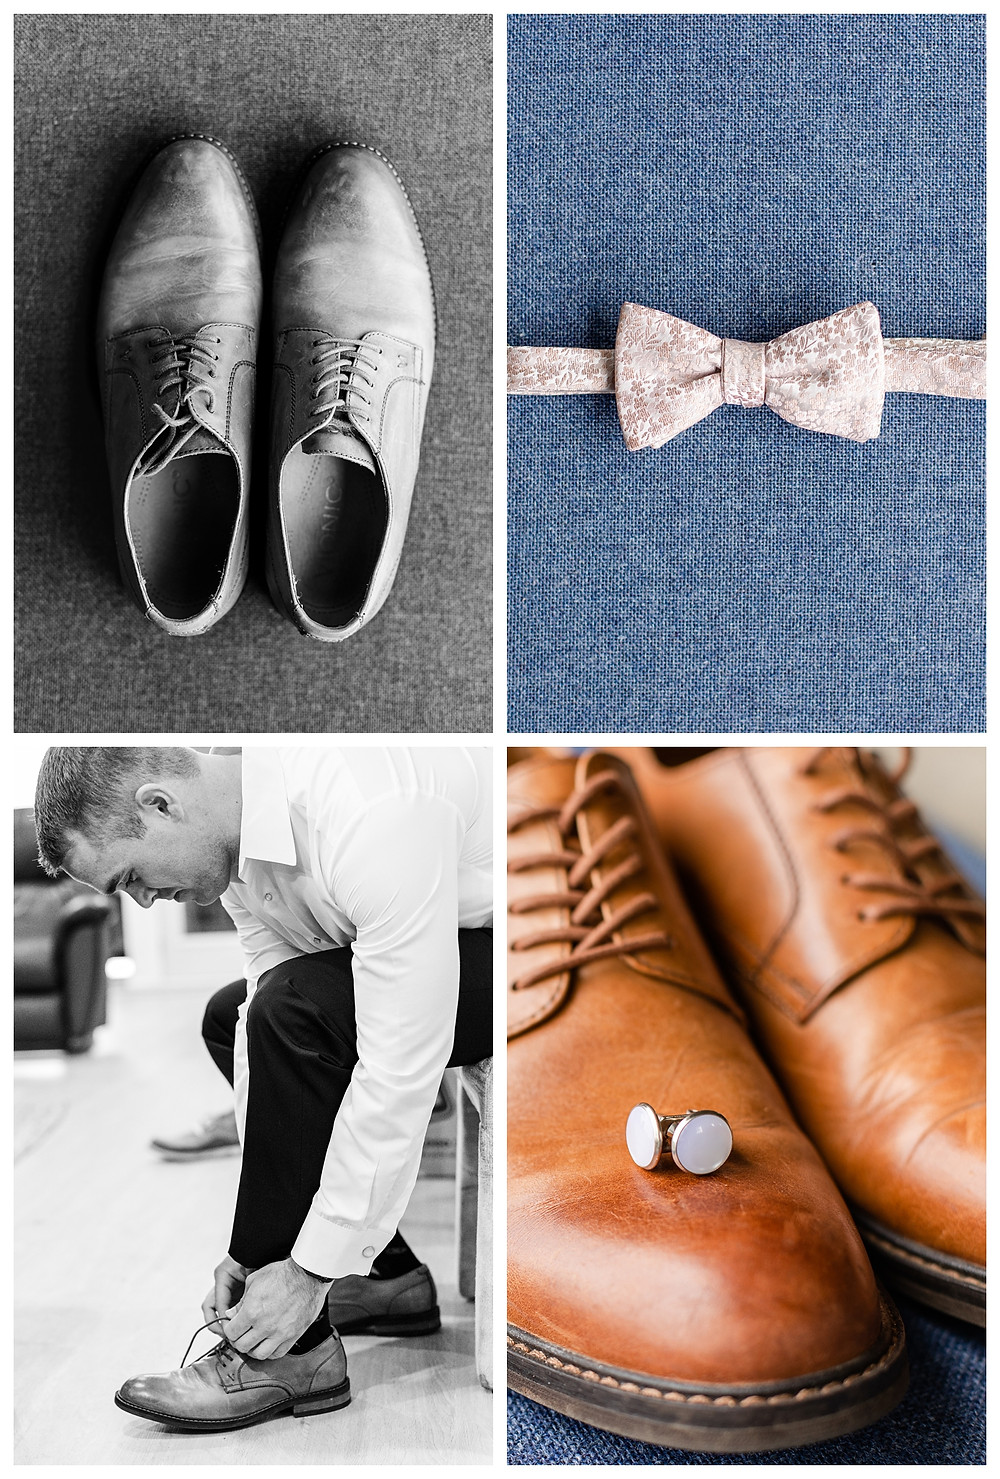 Josh and Andrea wedding photography husband and wife photographer team michigan pictures photo shoot Vineyard at 12 corners spring groom getting ready bowtie shoes